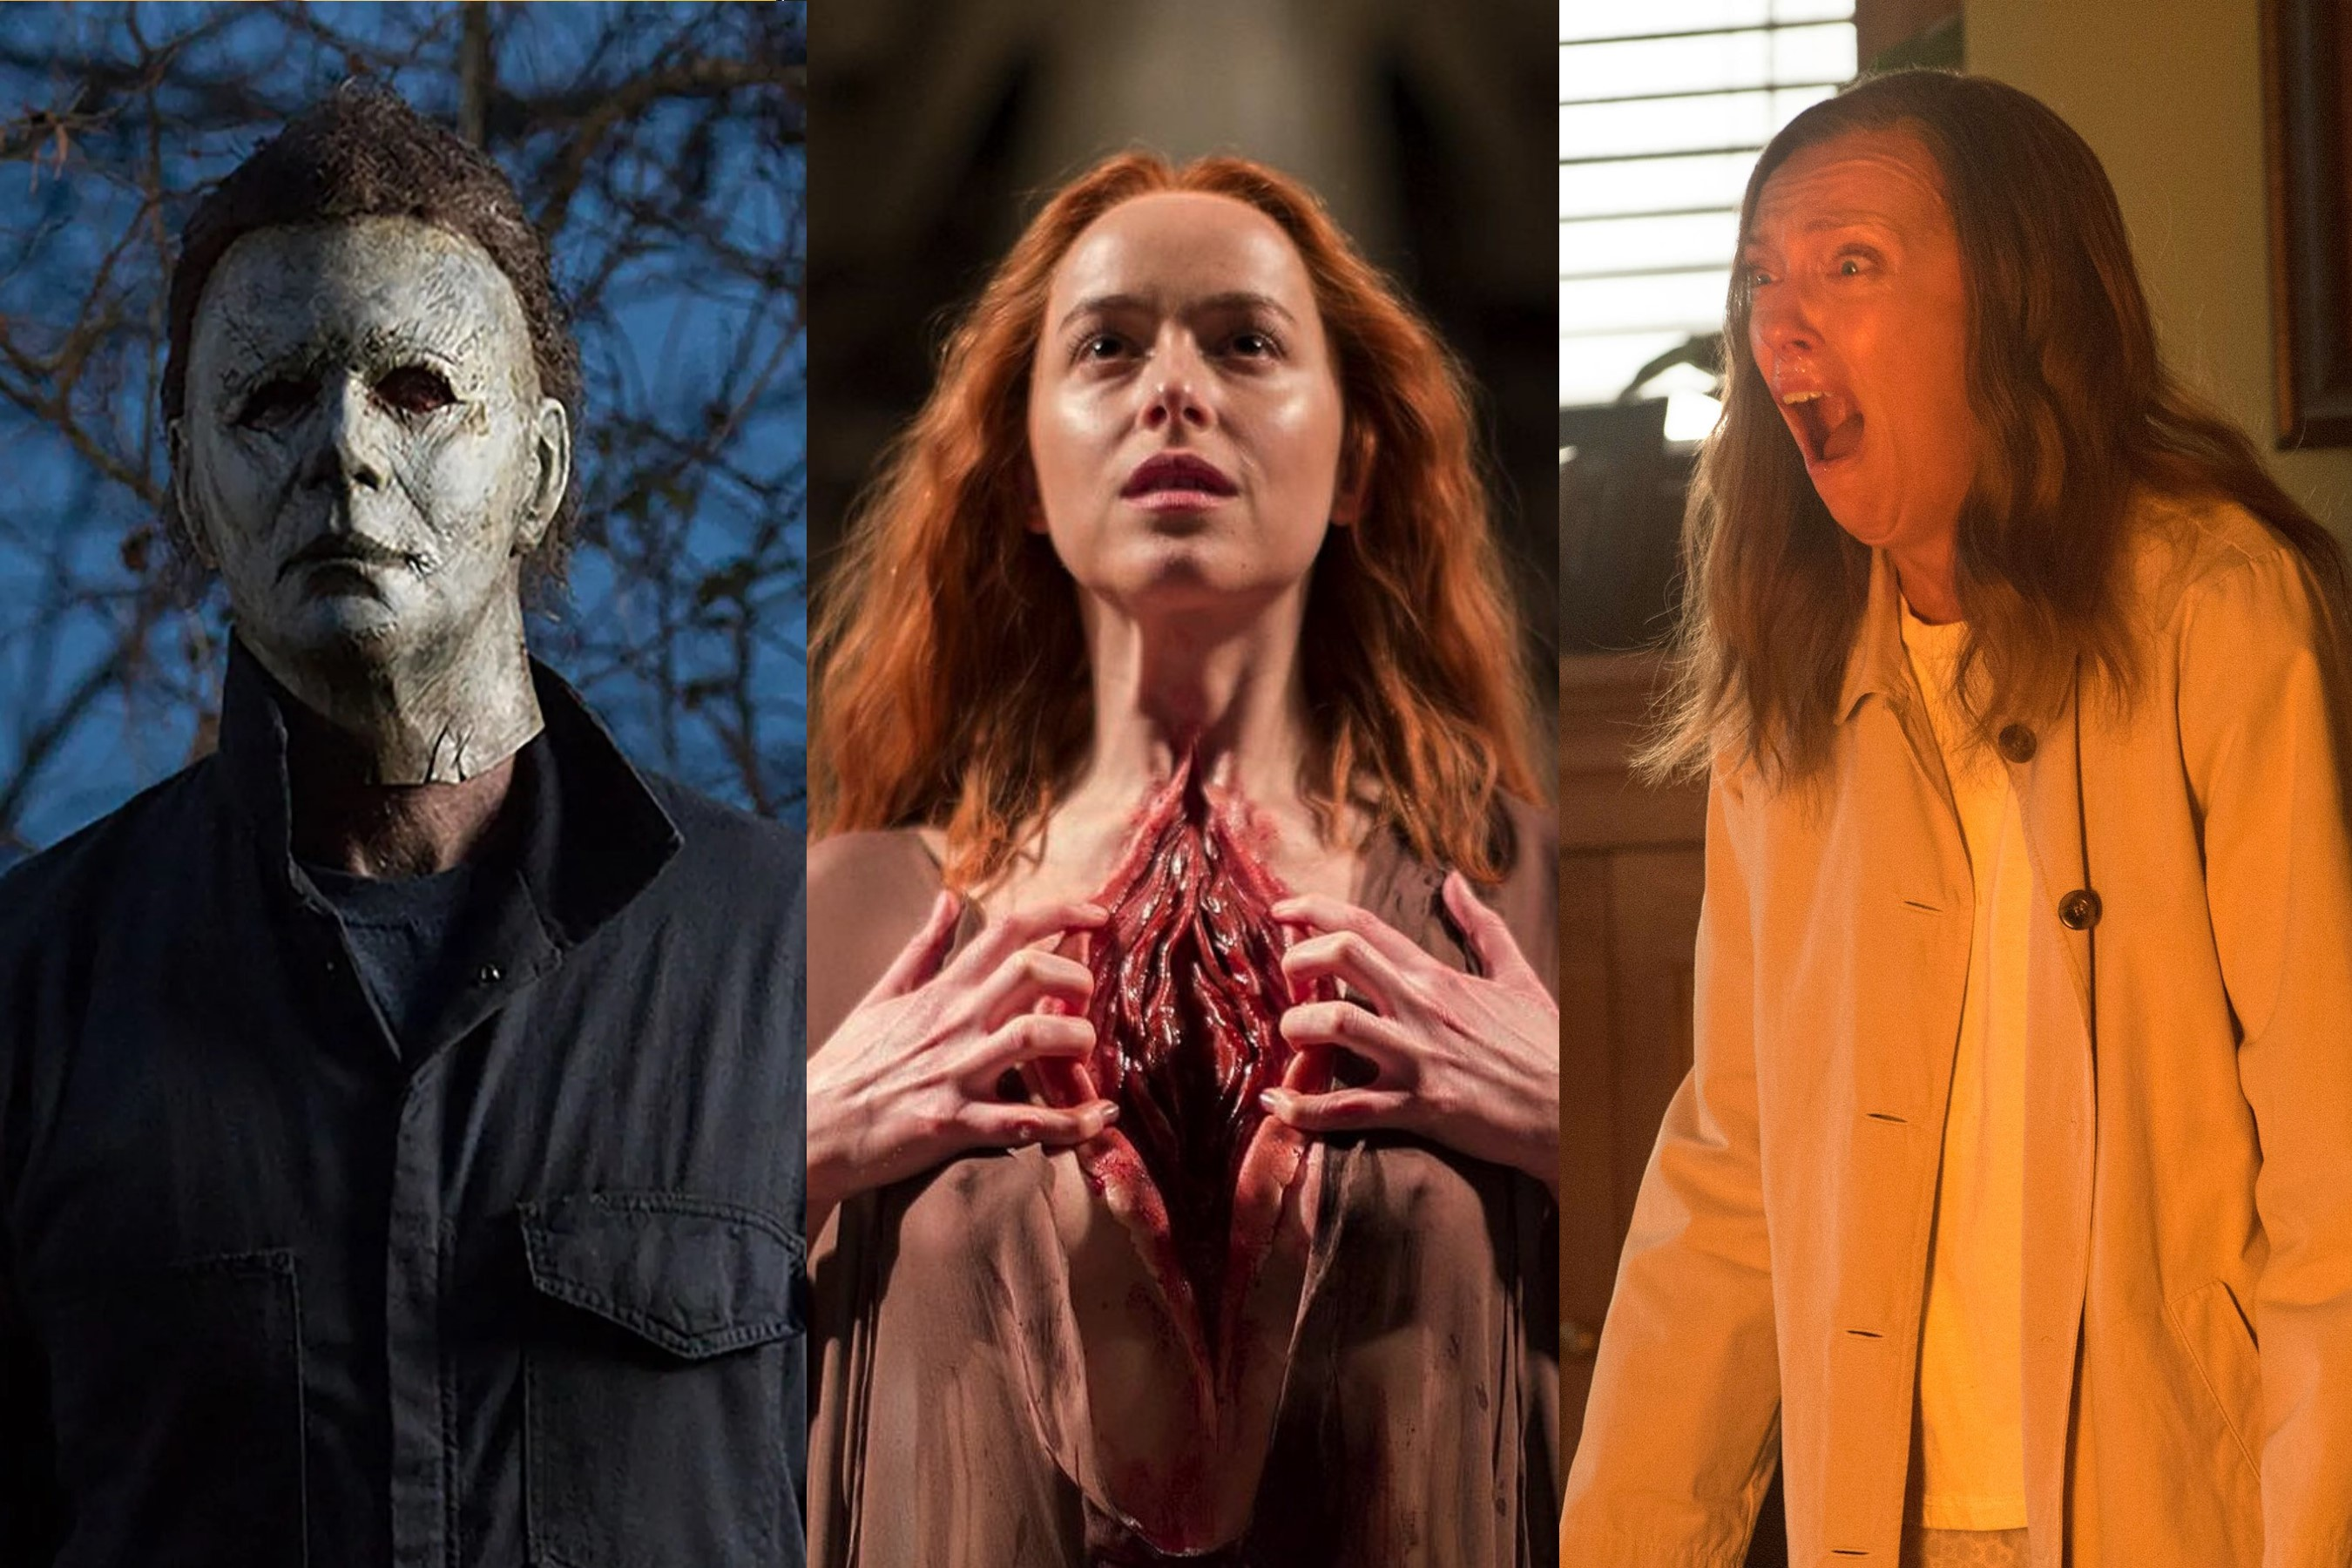 Bloody Disgusting Best Of 2019 Oscar Winners 2019: Bloody Disgusting's All Horror Edition